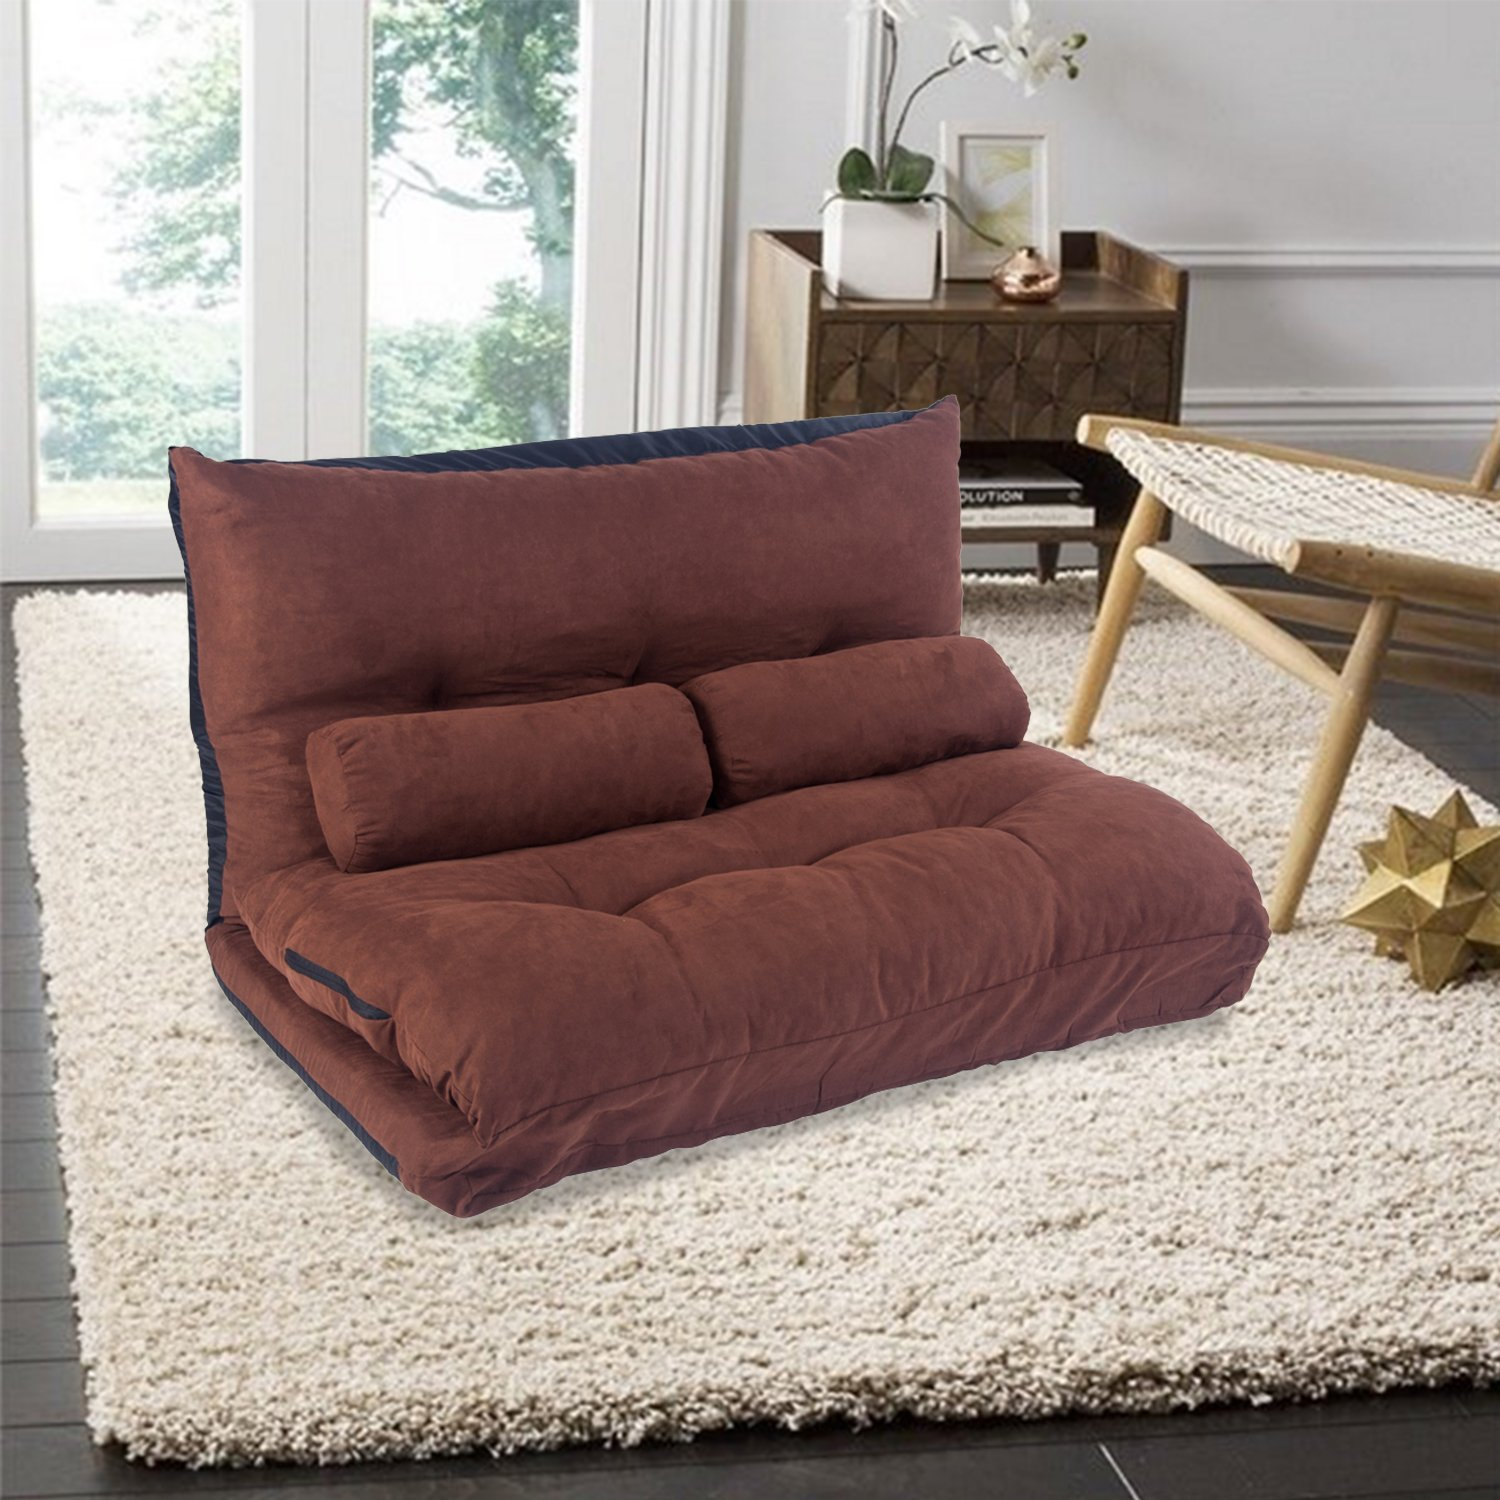 floor sofa bed family room sleeper 5 position double seat luxurious gaming